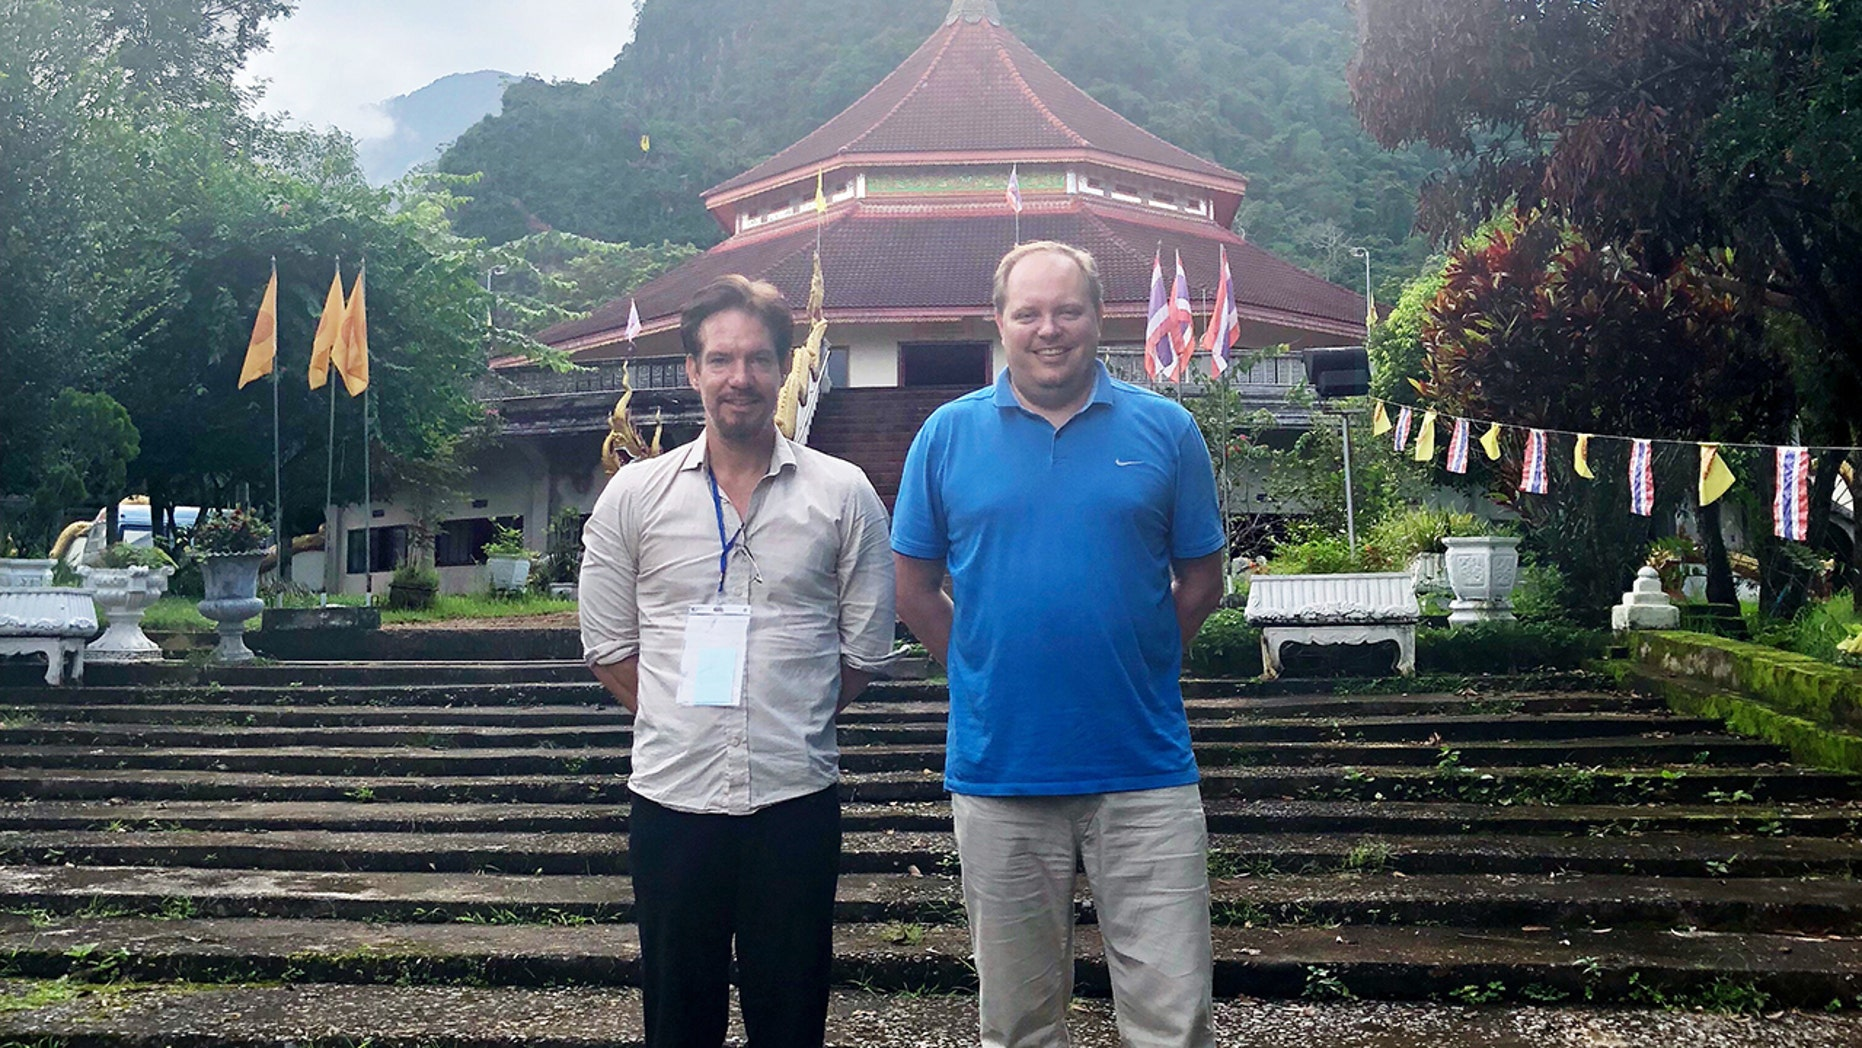 Adam Smith, left, of Kaos Entertainment and Michael Scott, founding partner of Pure Flix in Thailand.